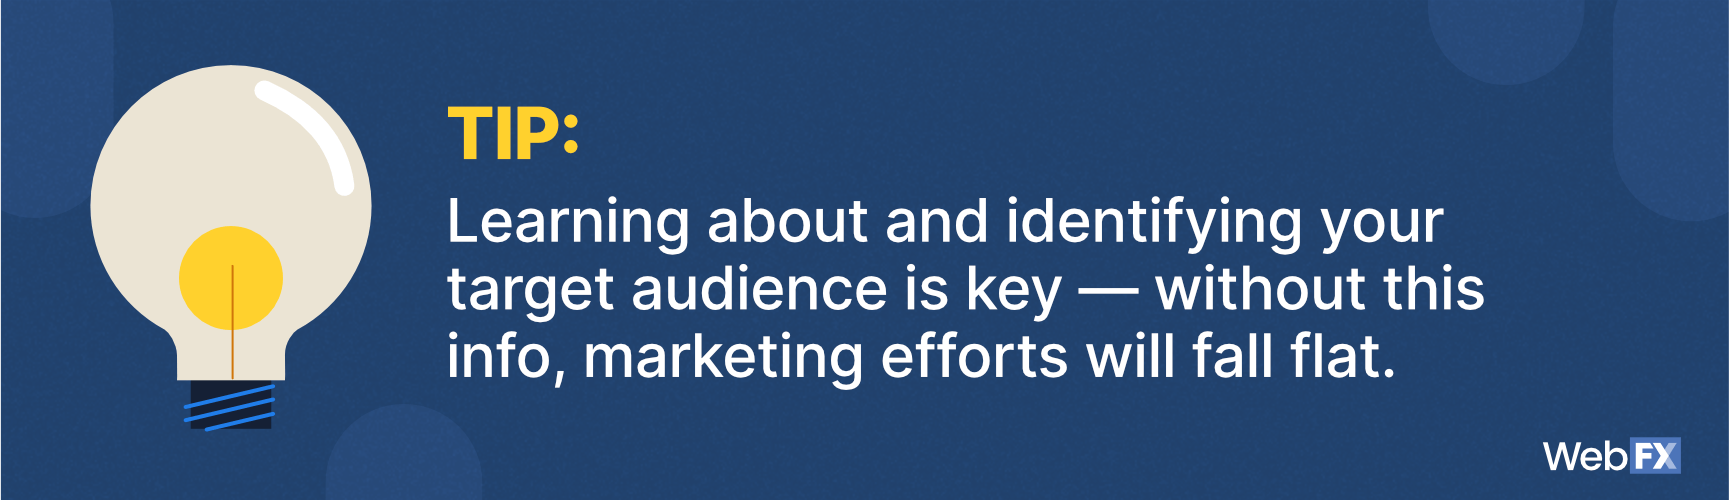 without identifying your audience your campaign will fall flat